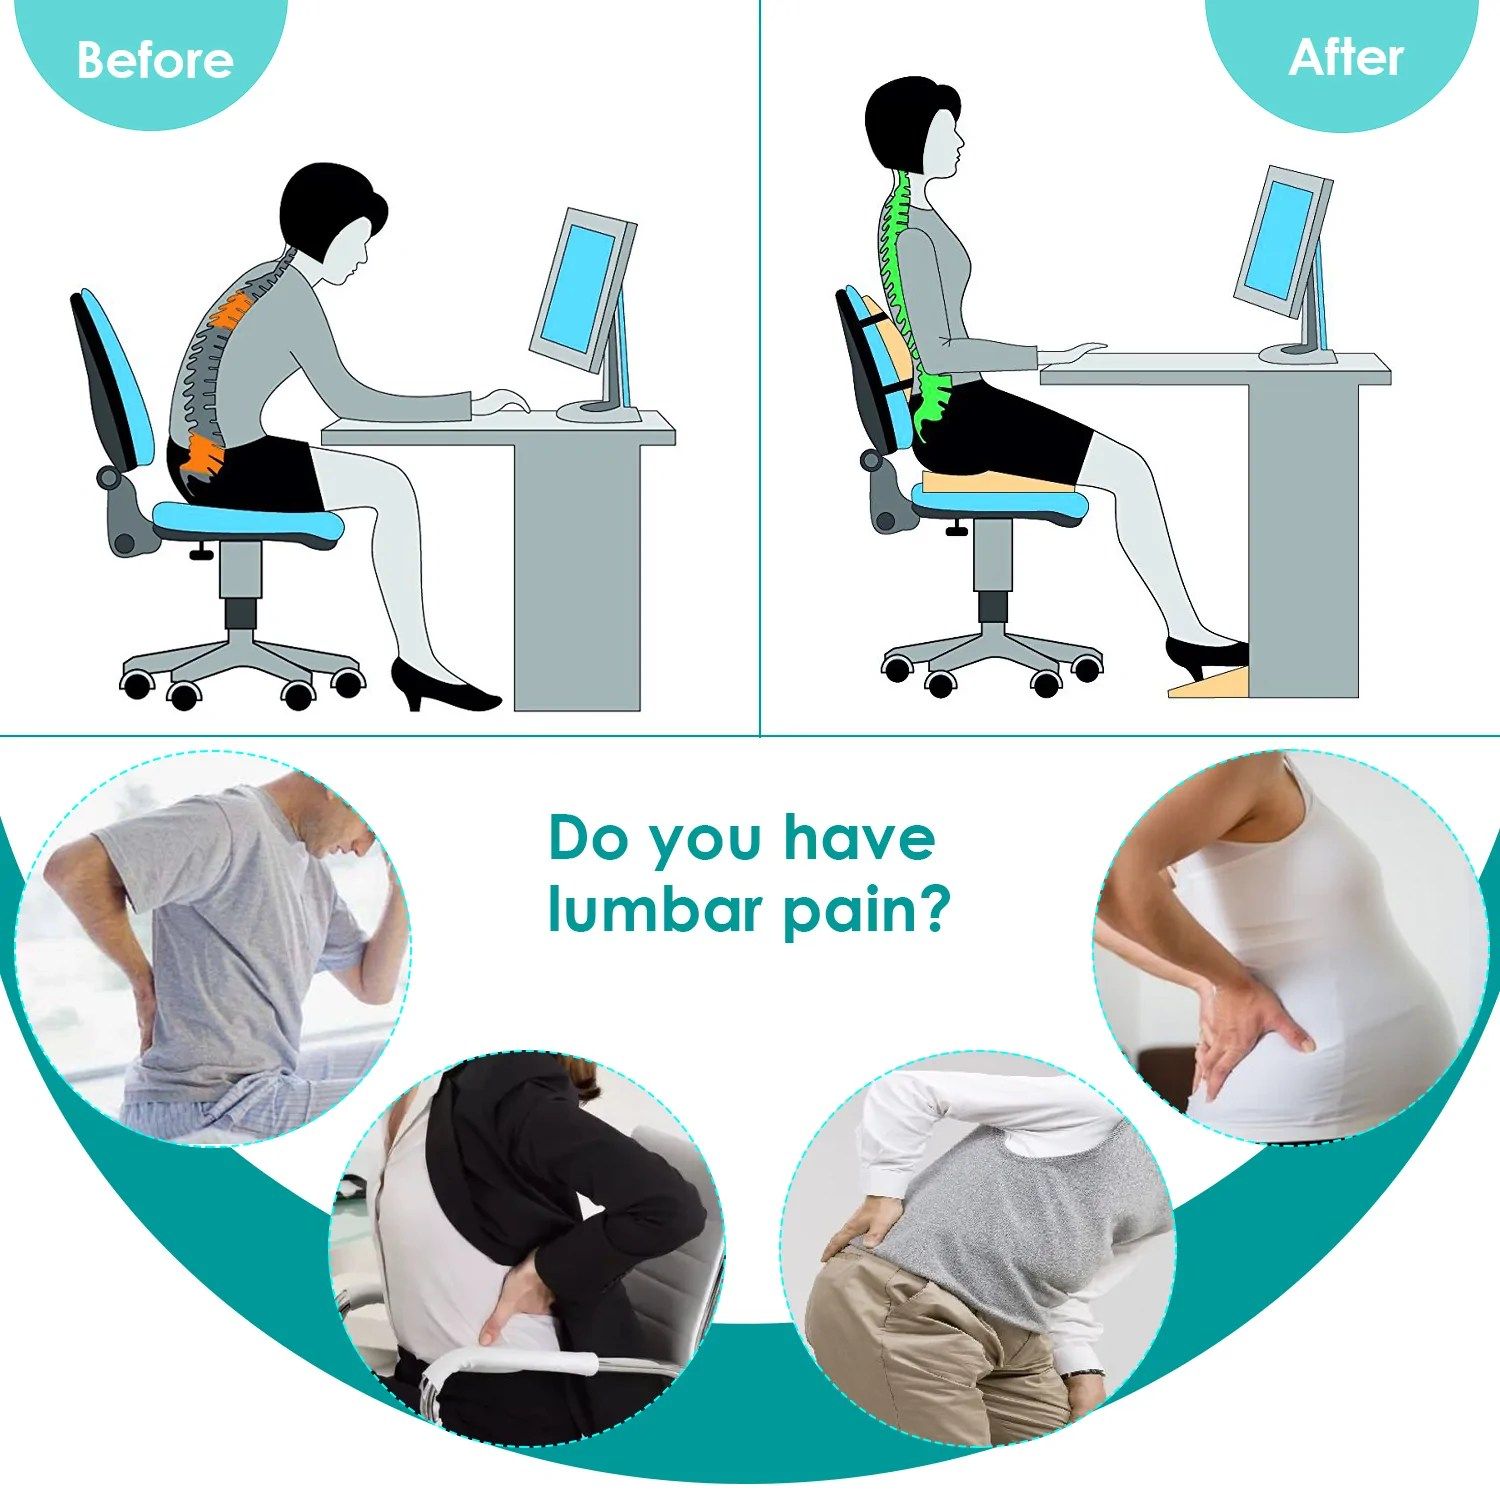 Lumbar Support Pillow For Chair Feagar Lumbar Support Pillow Back Cushion Memory Foam Orthopedic